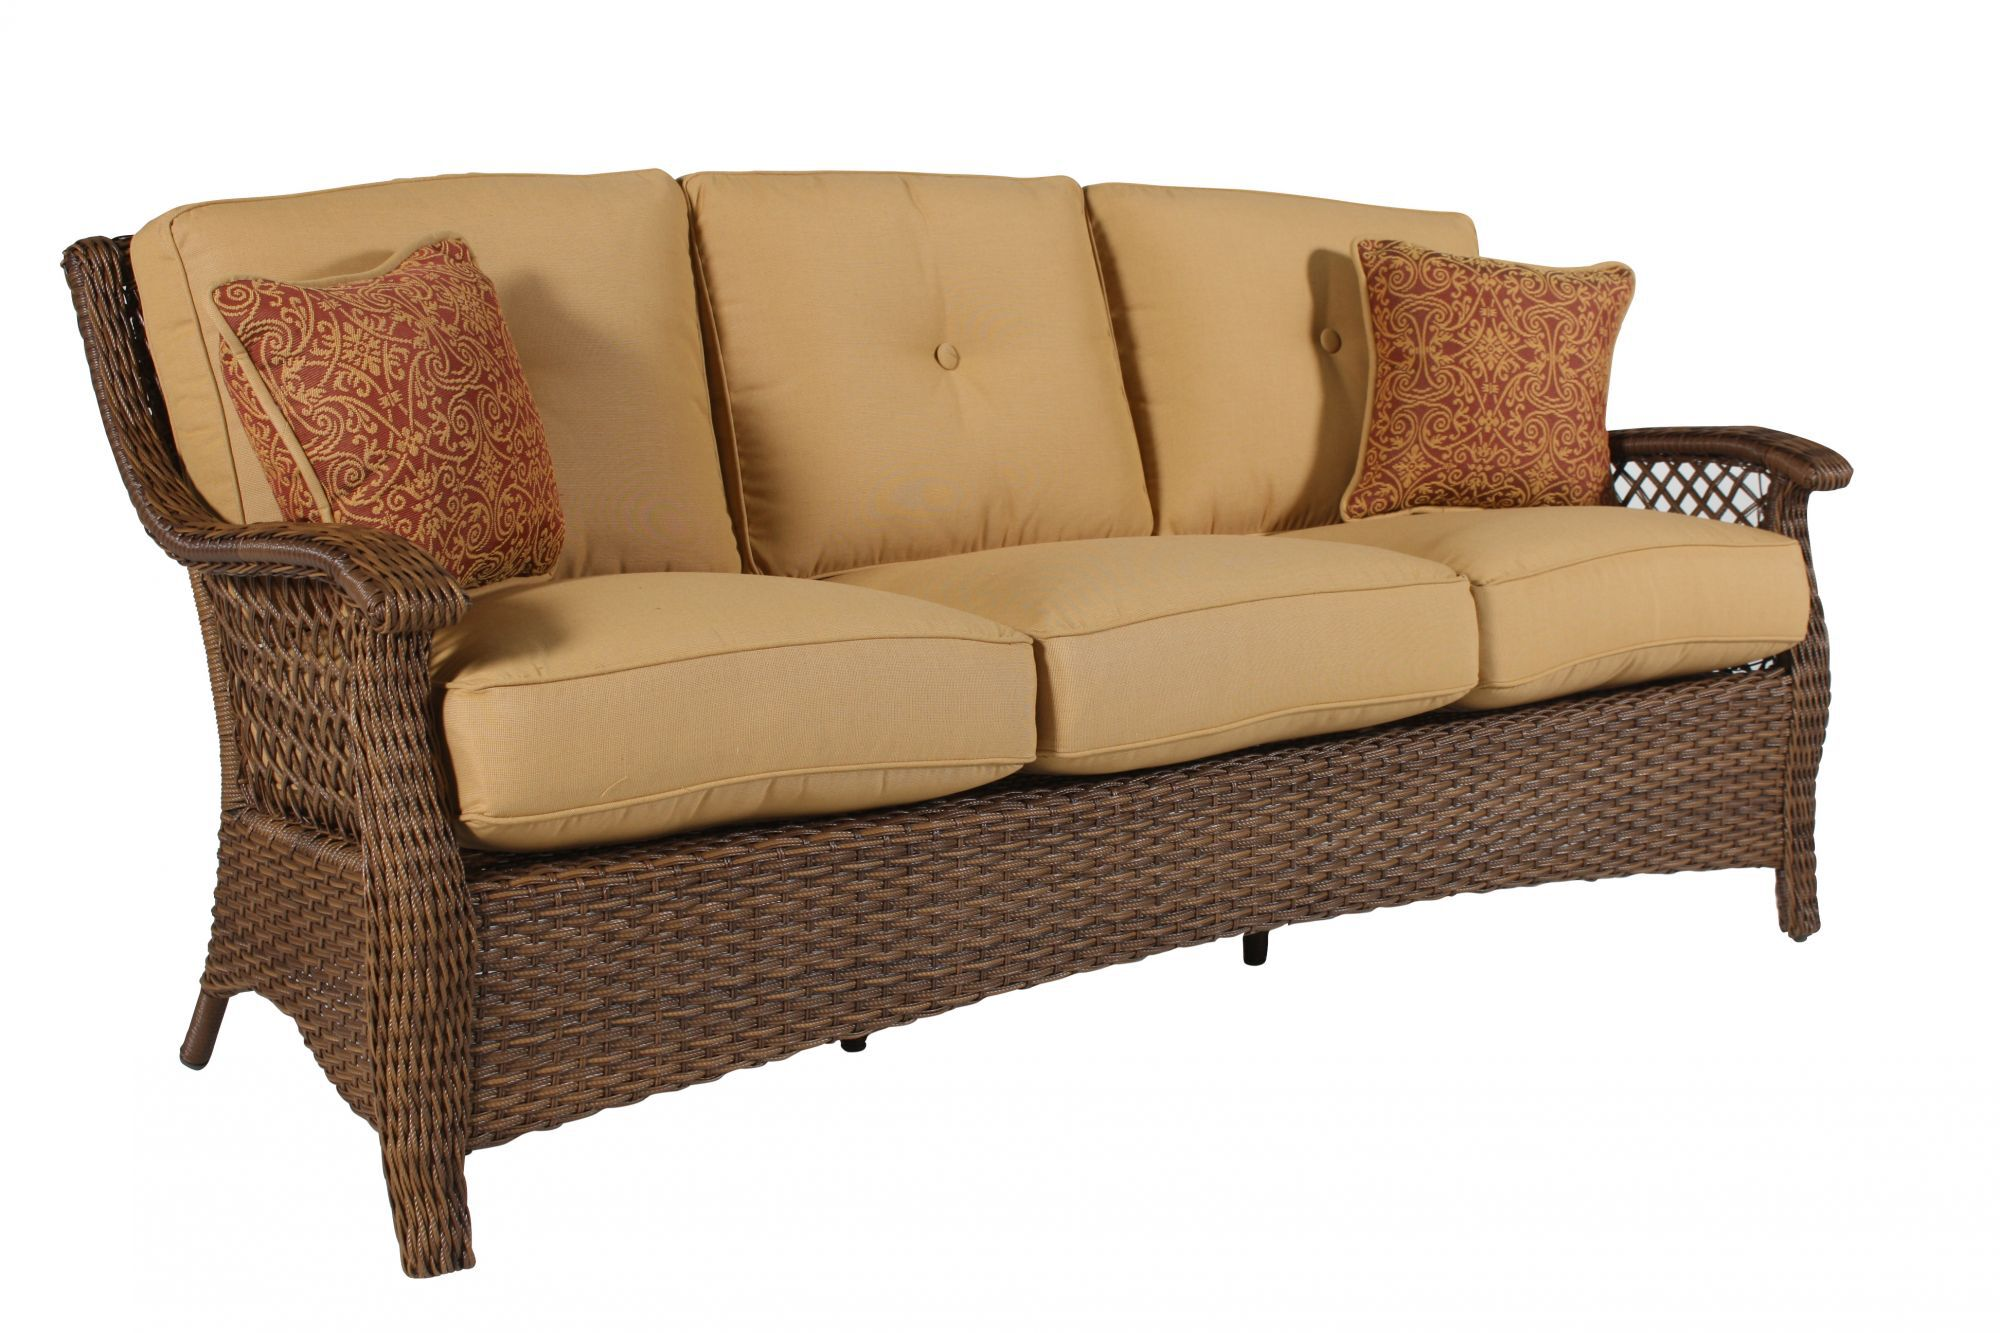 button tufted sofas ara futon sofa bed with storage hazelnut casual woven in brown mathis brothers